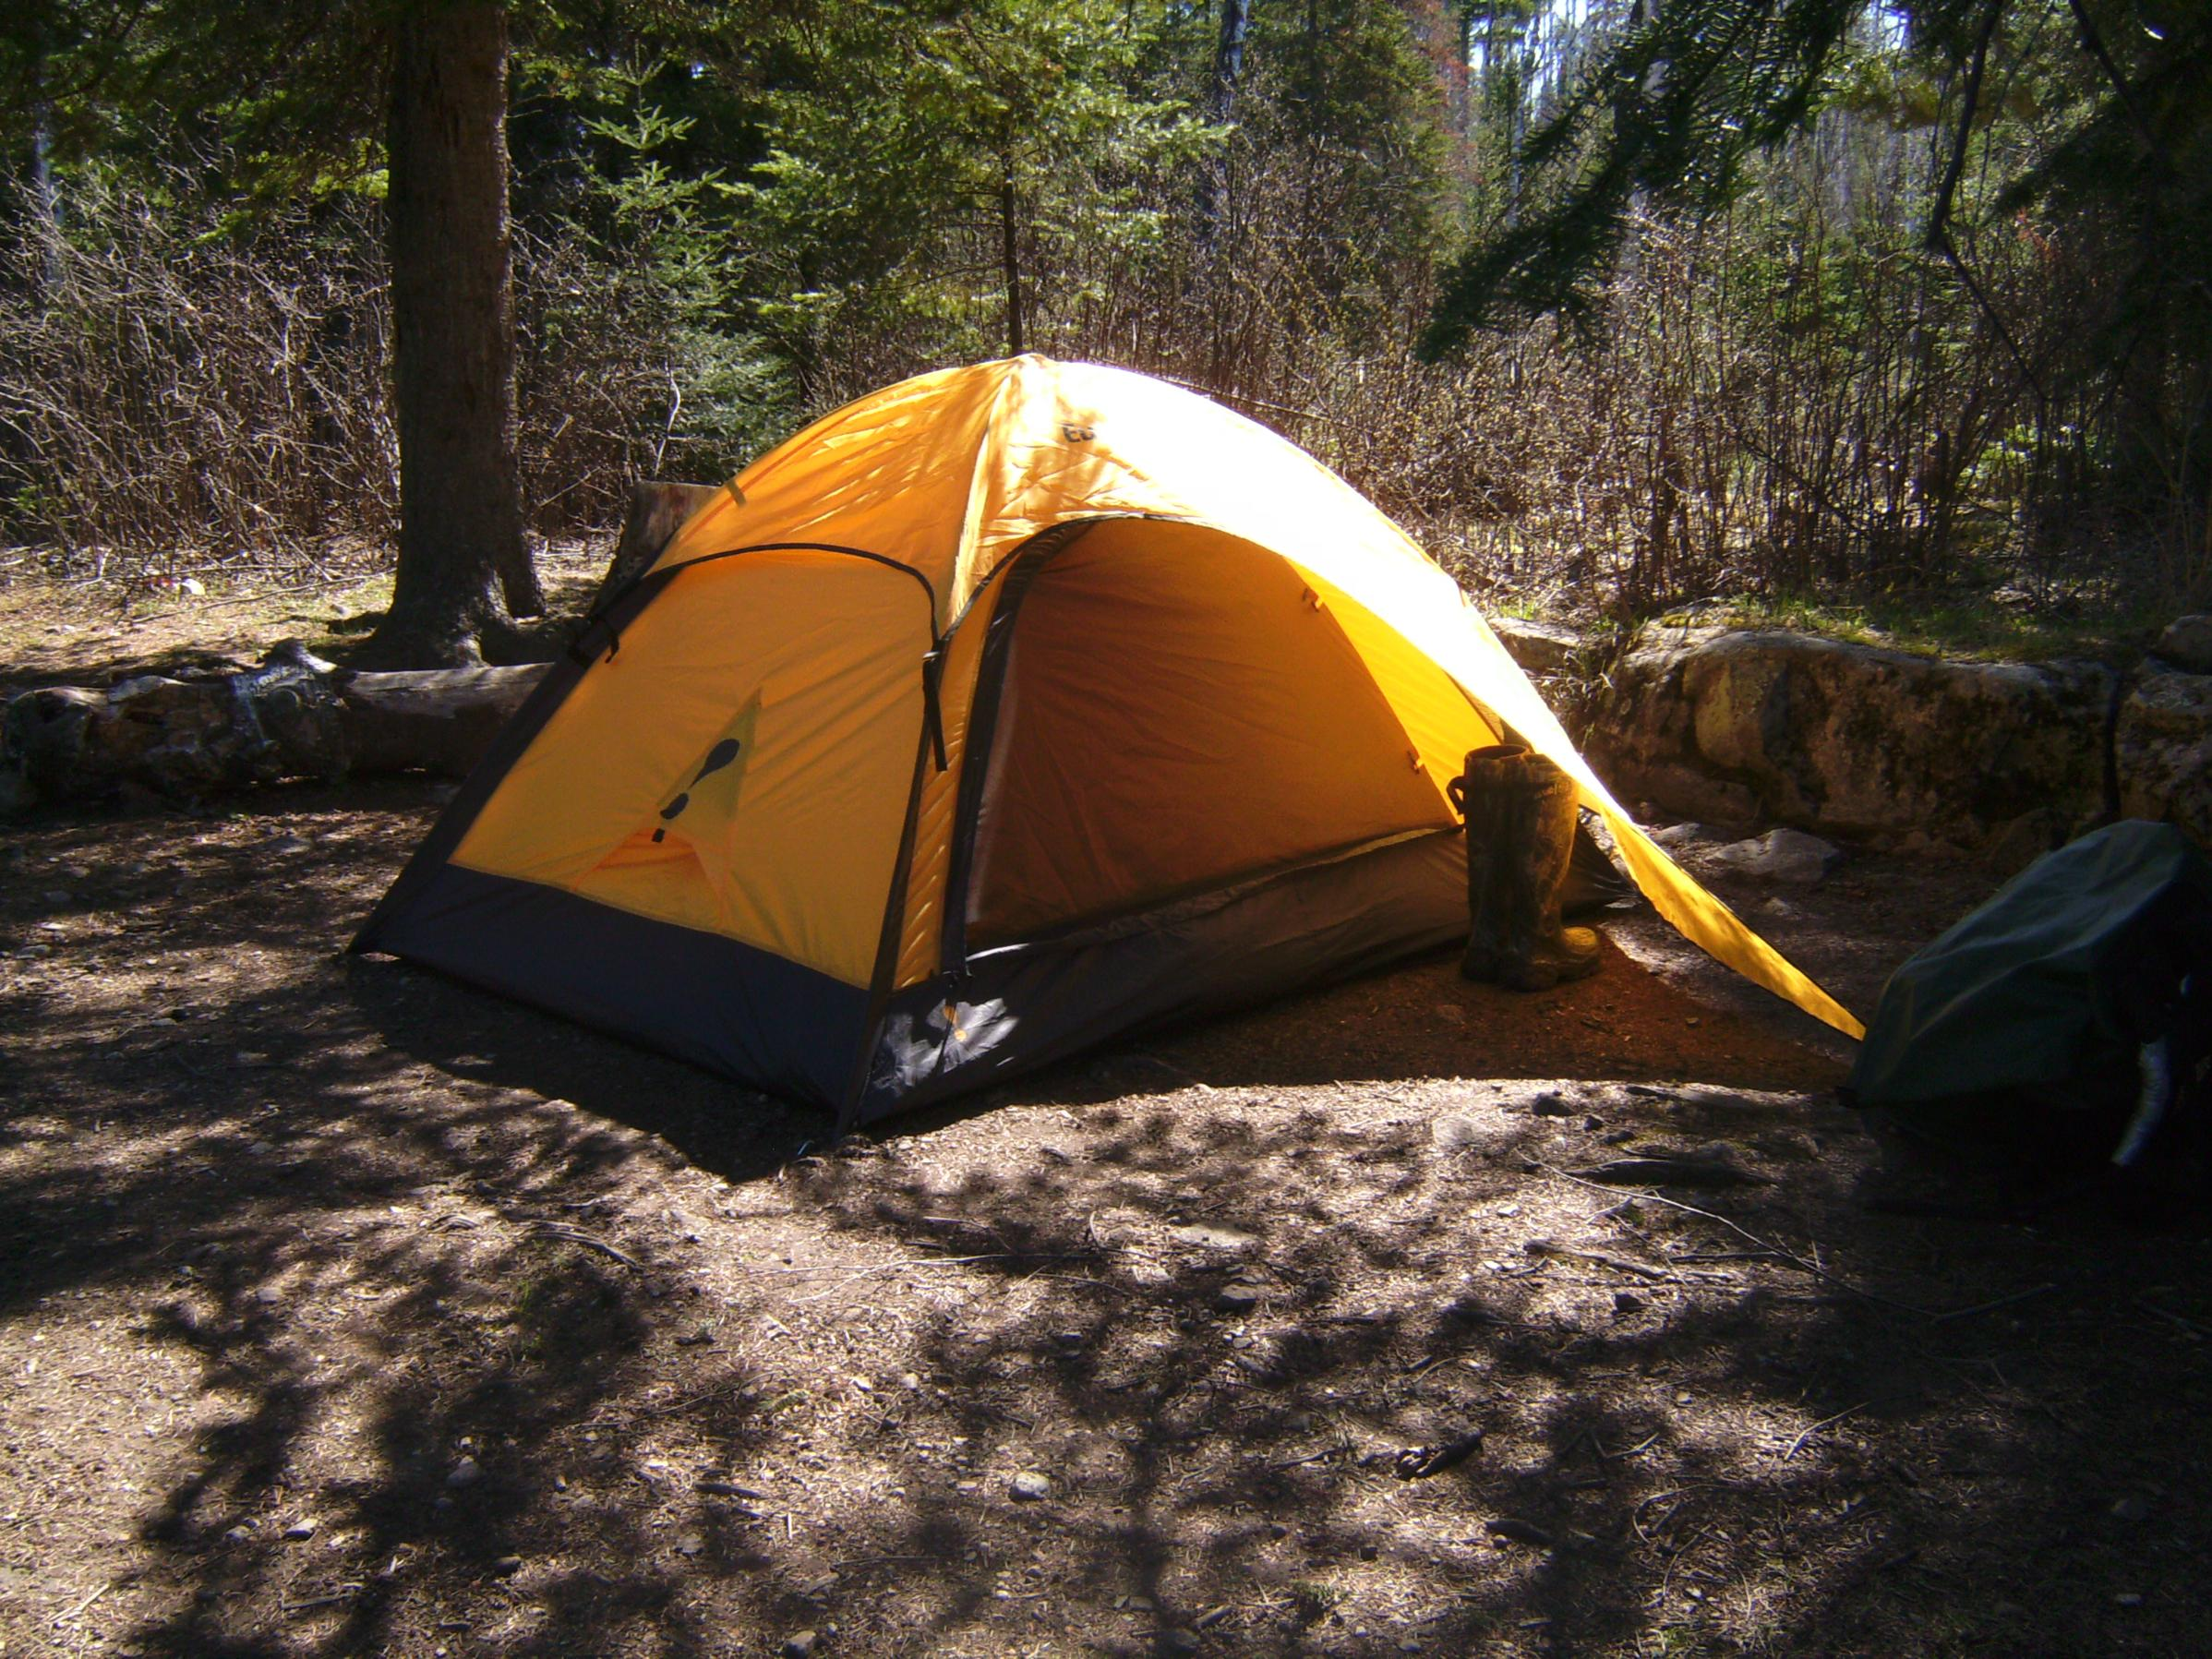 What about a Eureka spitfire 1 2# 12oz. My other tent is Apex 2 man and have had good luck with no problems. My first tent was a 4 man Timberline ... & BWCA Solo Tents Boundary Waters Gear Forum